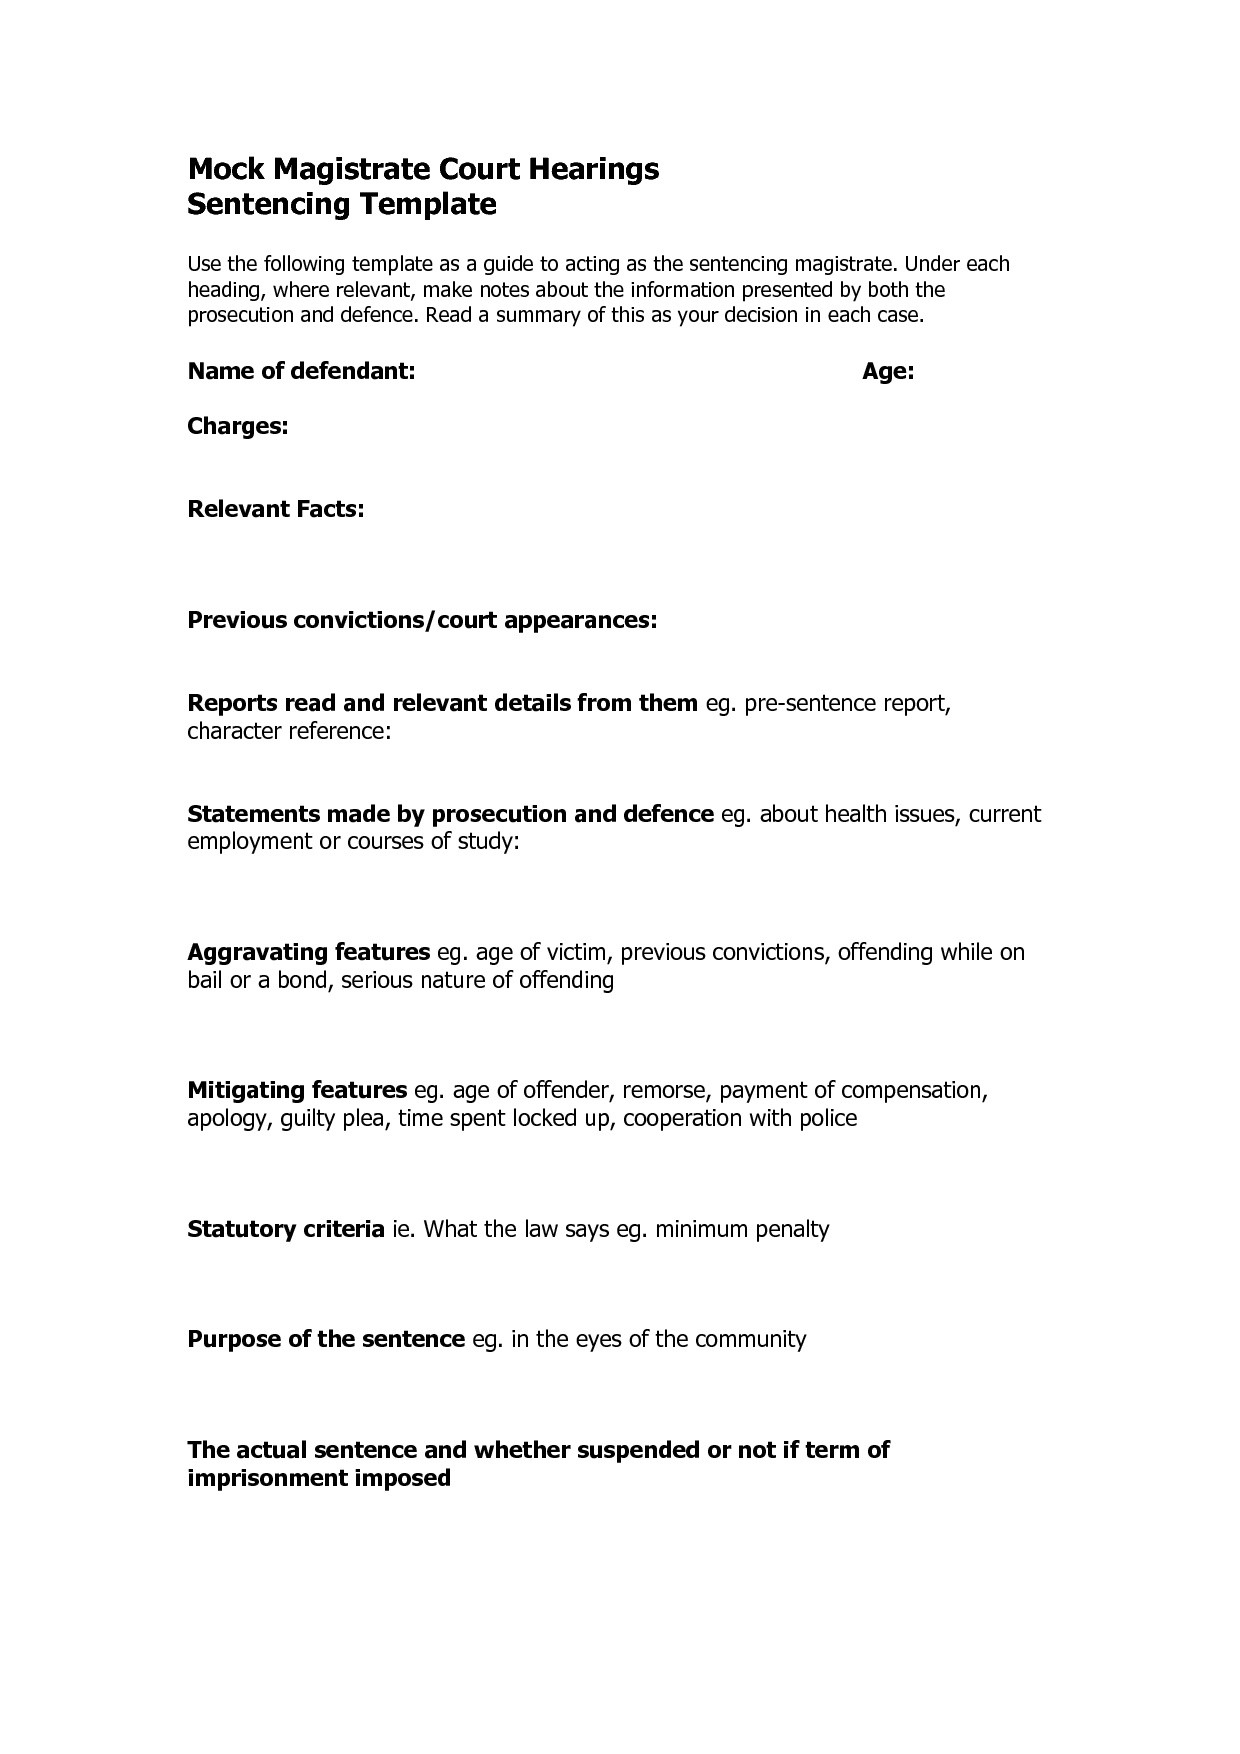 Formal Letter Format To Court Bunch Ideas Of Features Of A Formal within Formal Letter Format To Court 22344